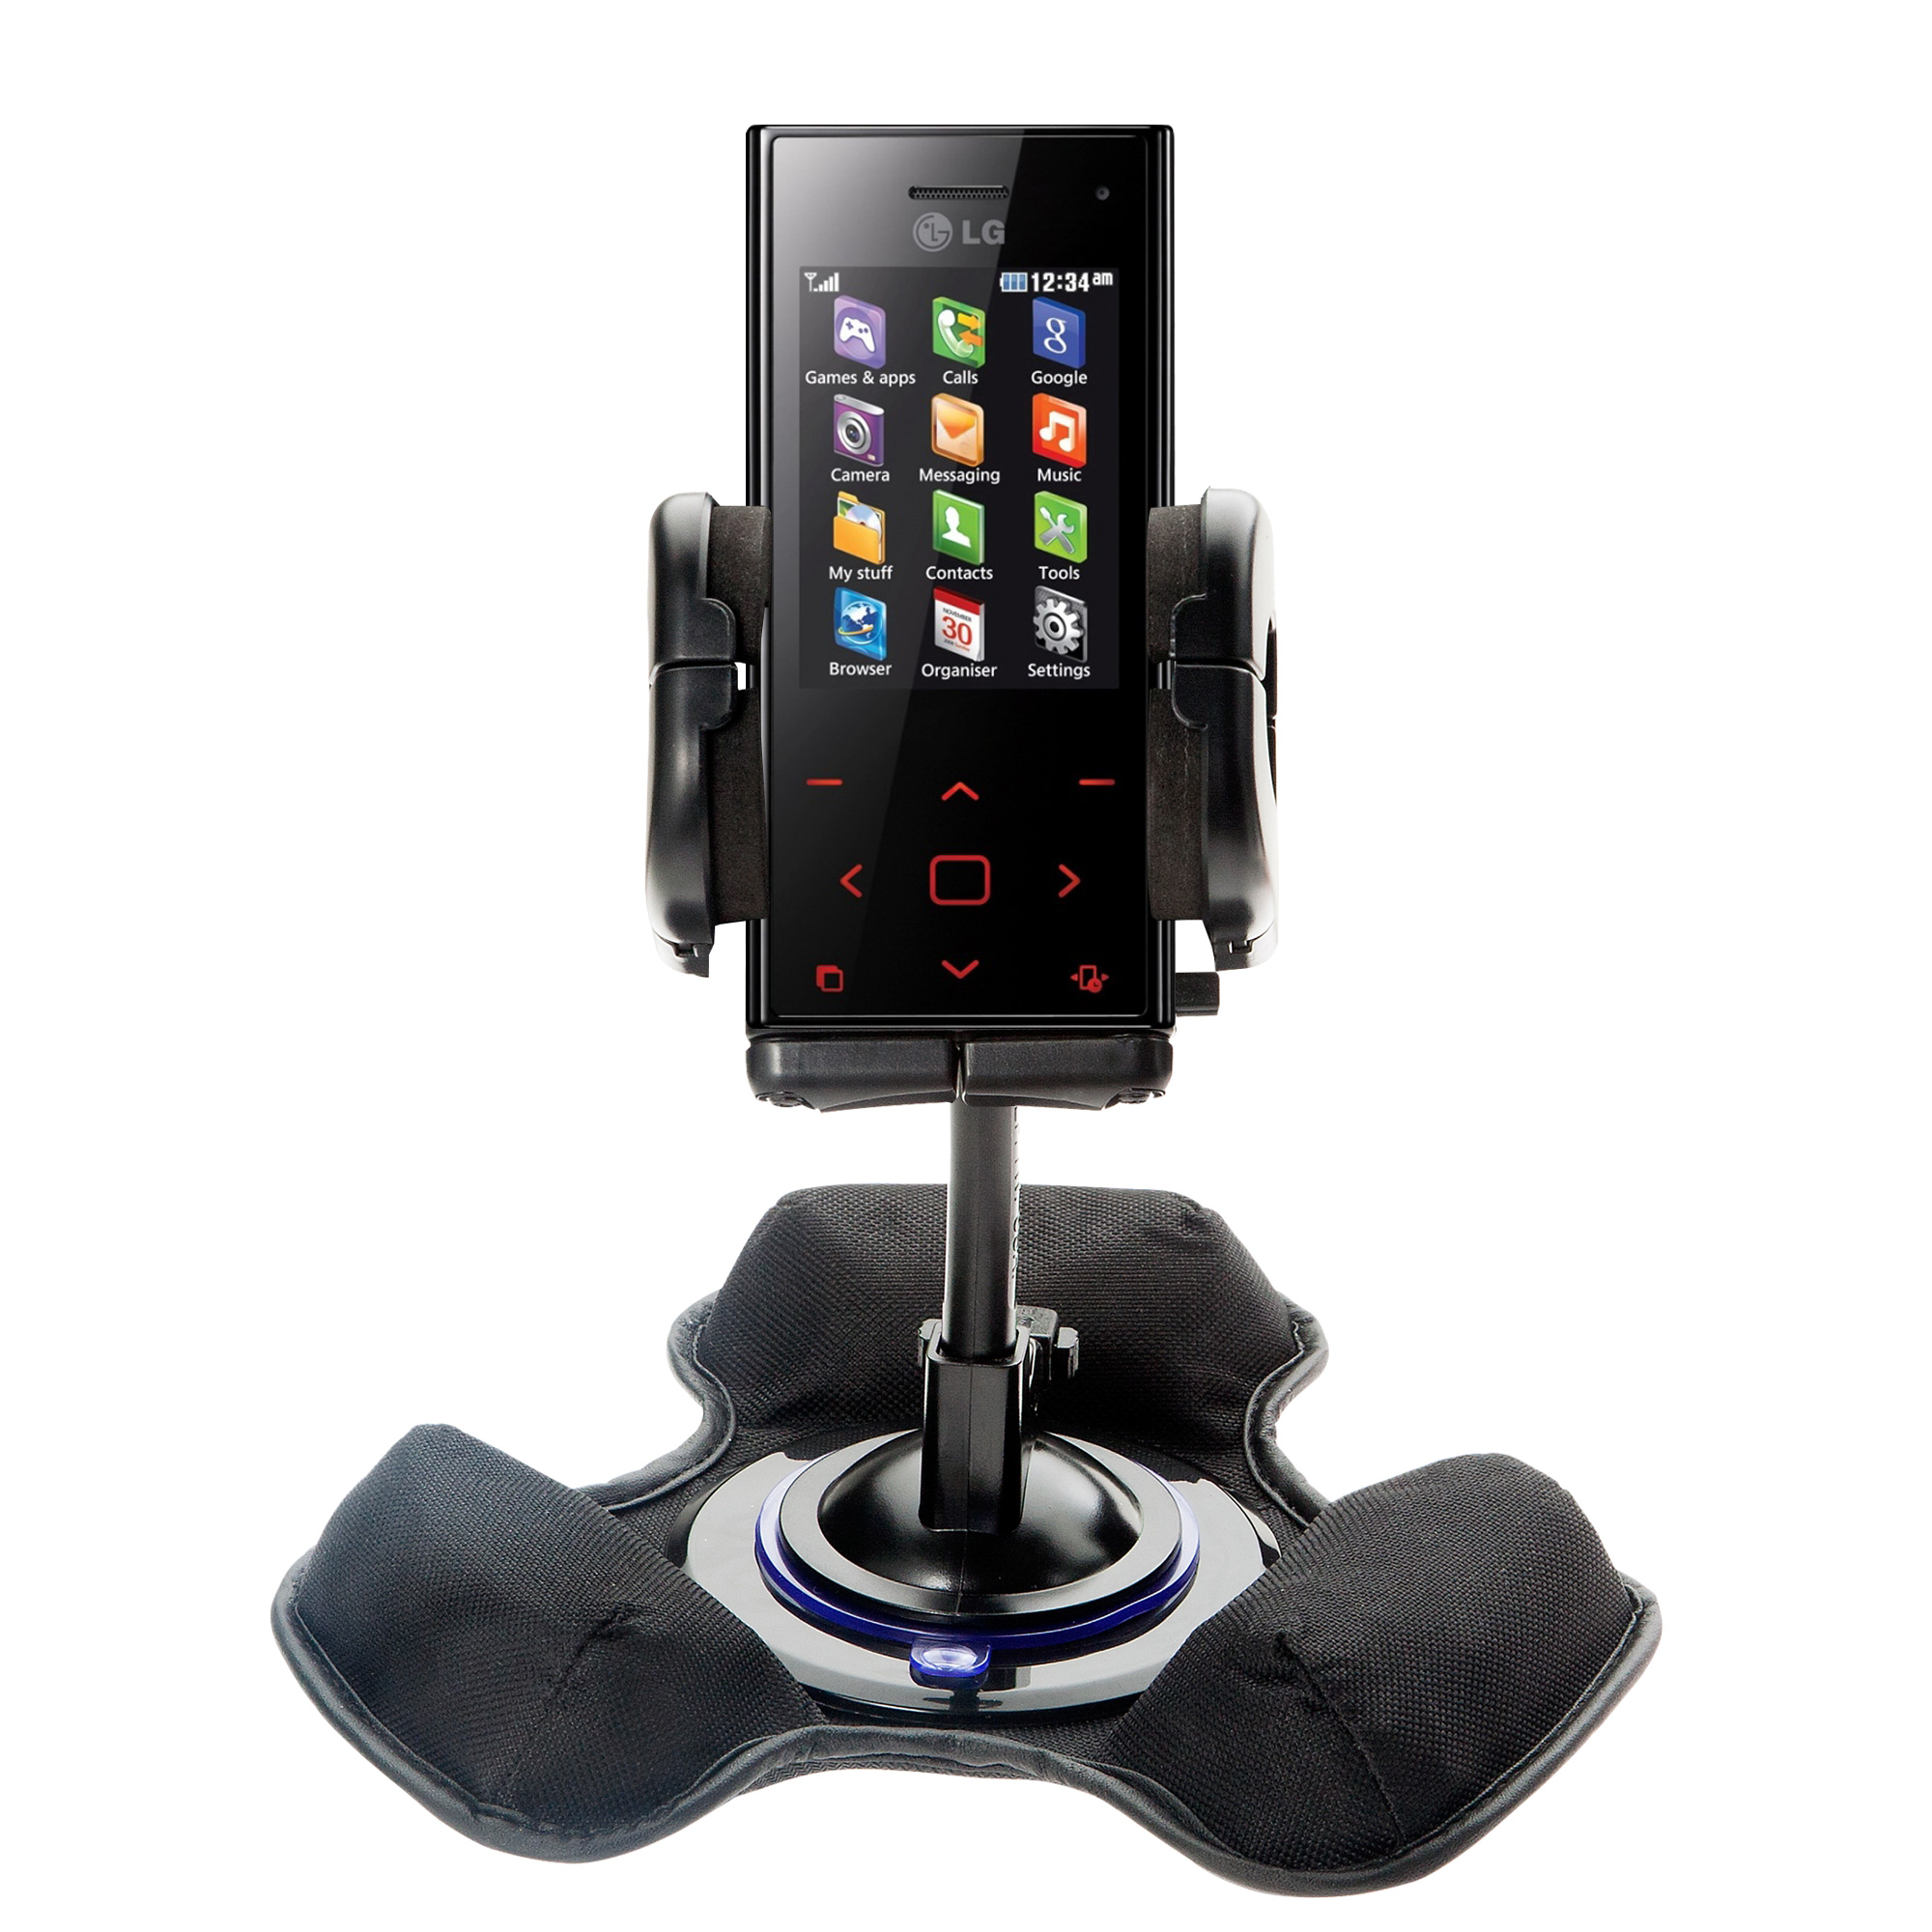 Dash and Windshield Holder compatible with the LG Chocolate BL42